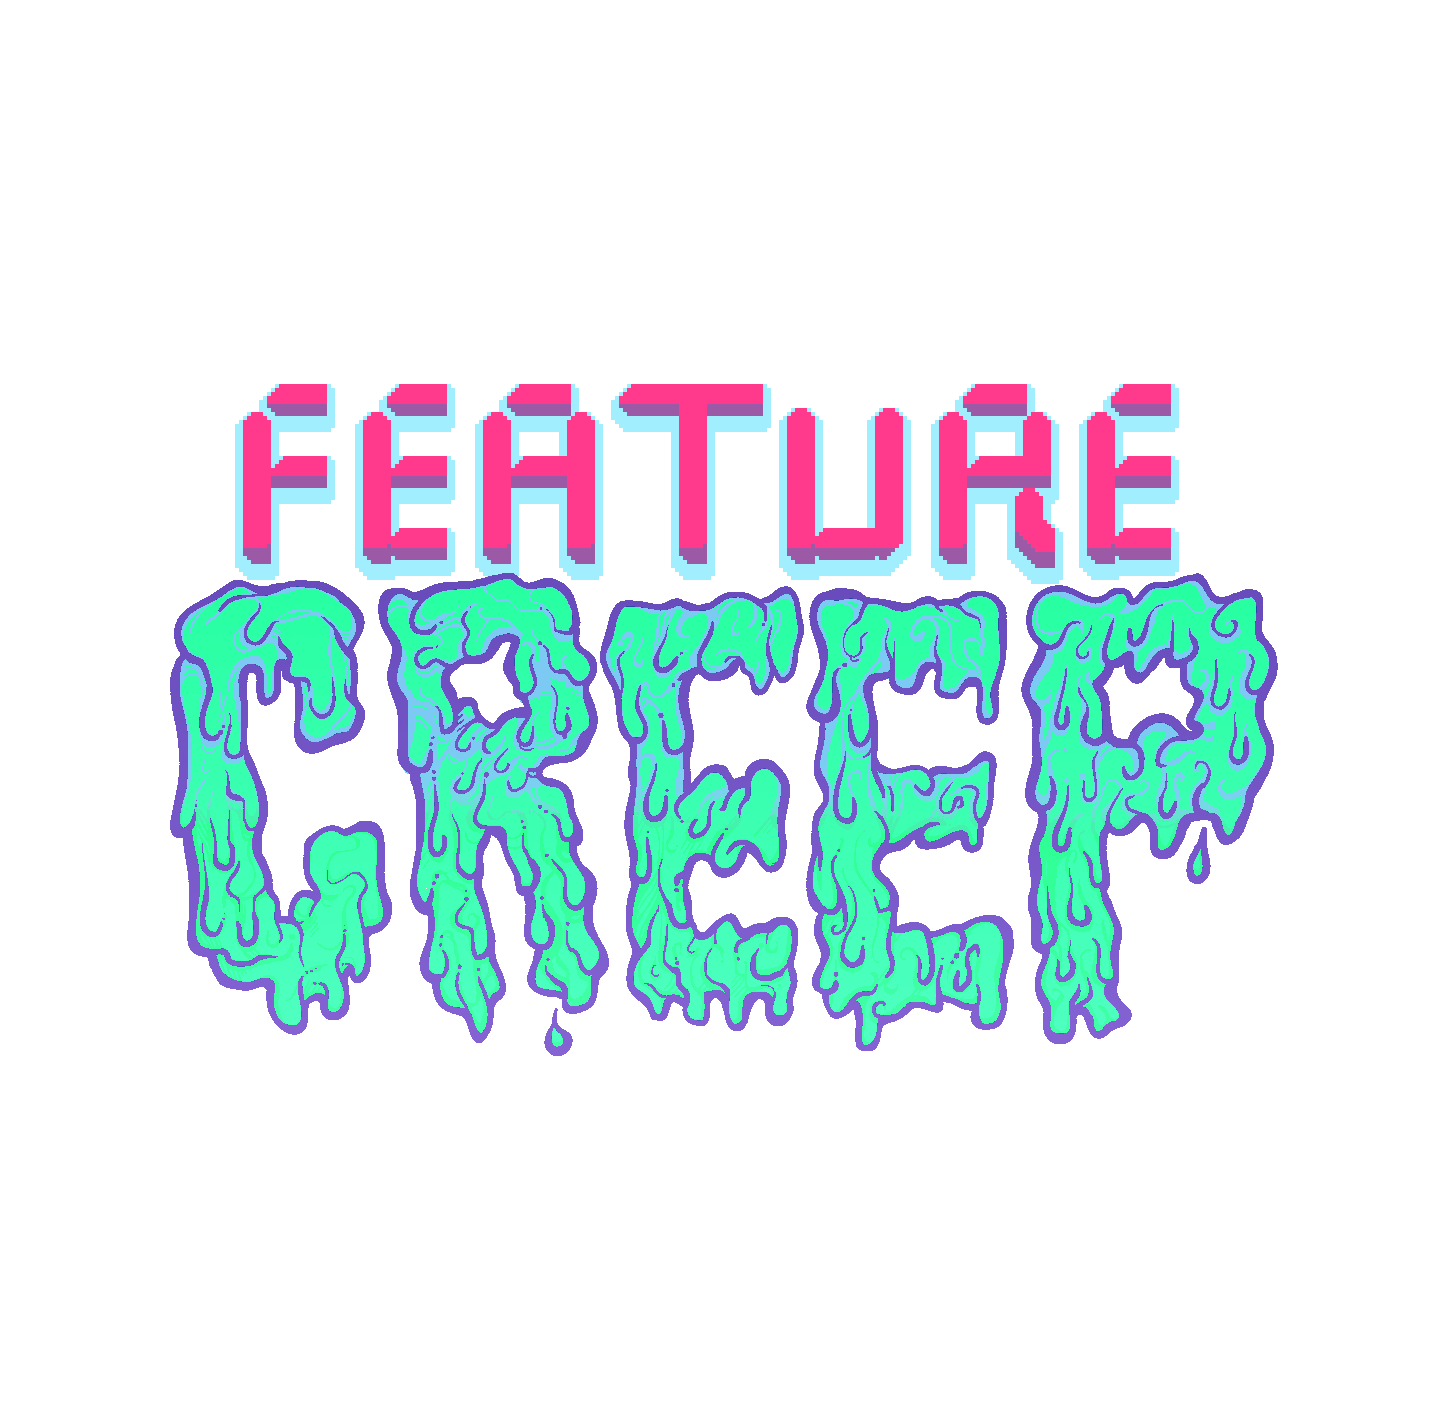 Feature Creep